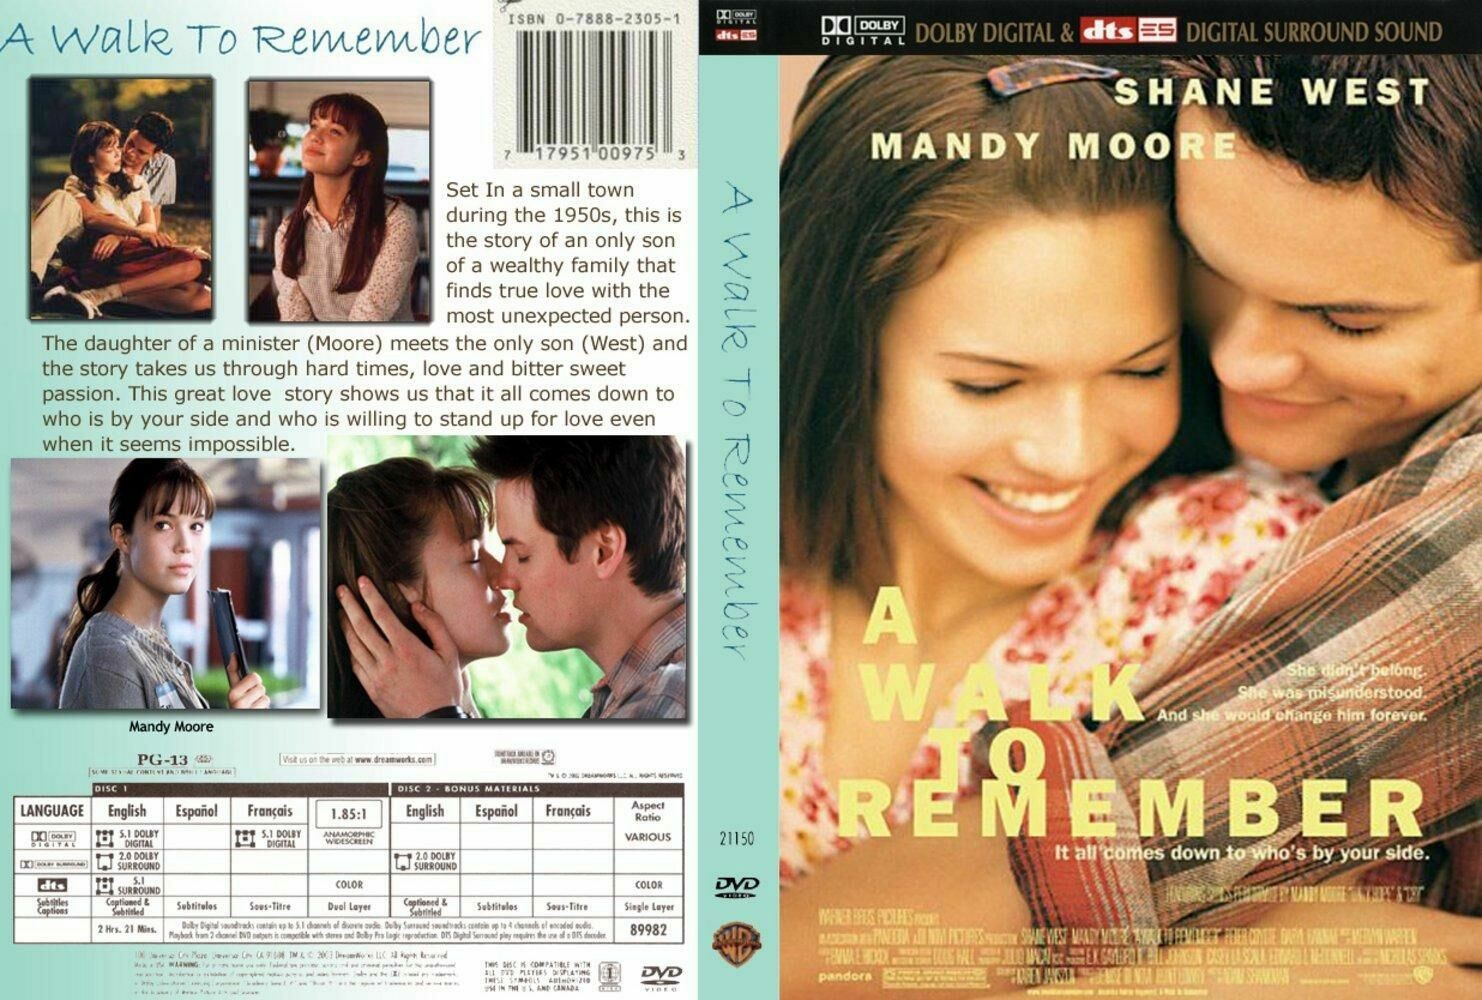 a walk to remember A Walk To Remember   Un Paseo Para Recordar (español Latino)